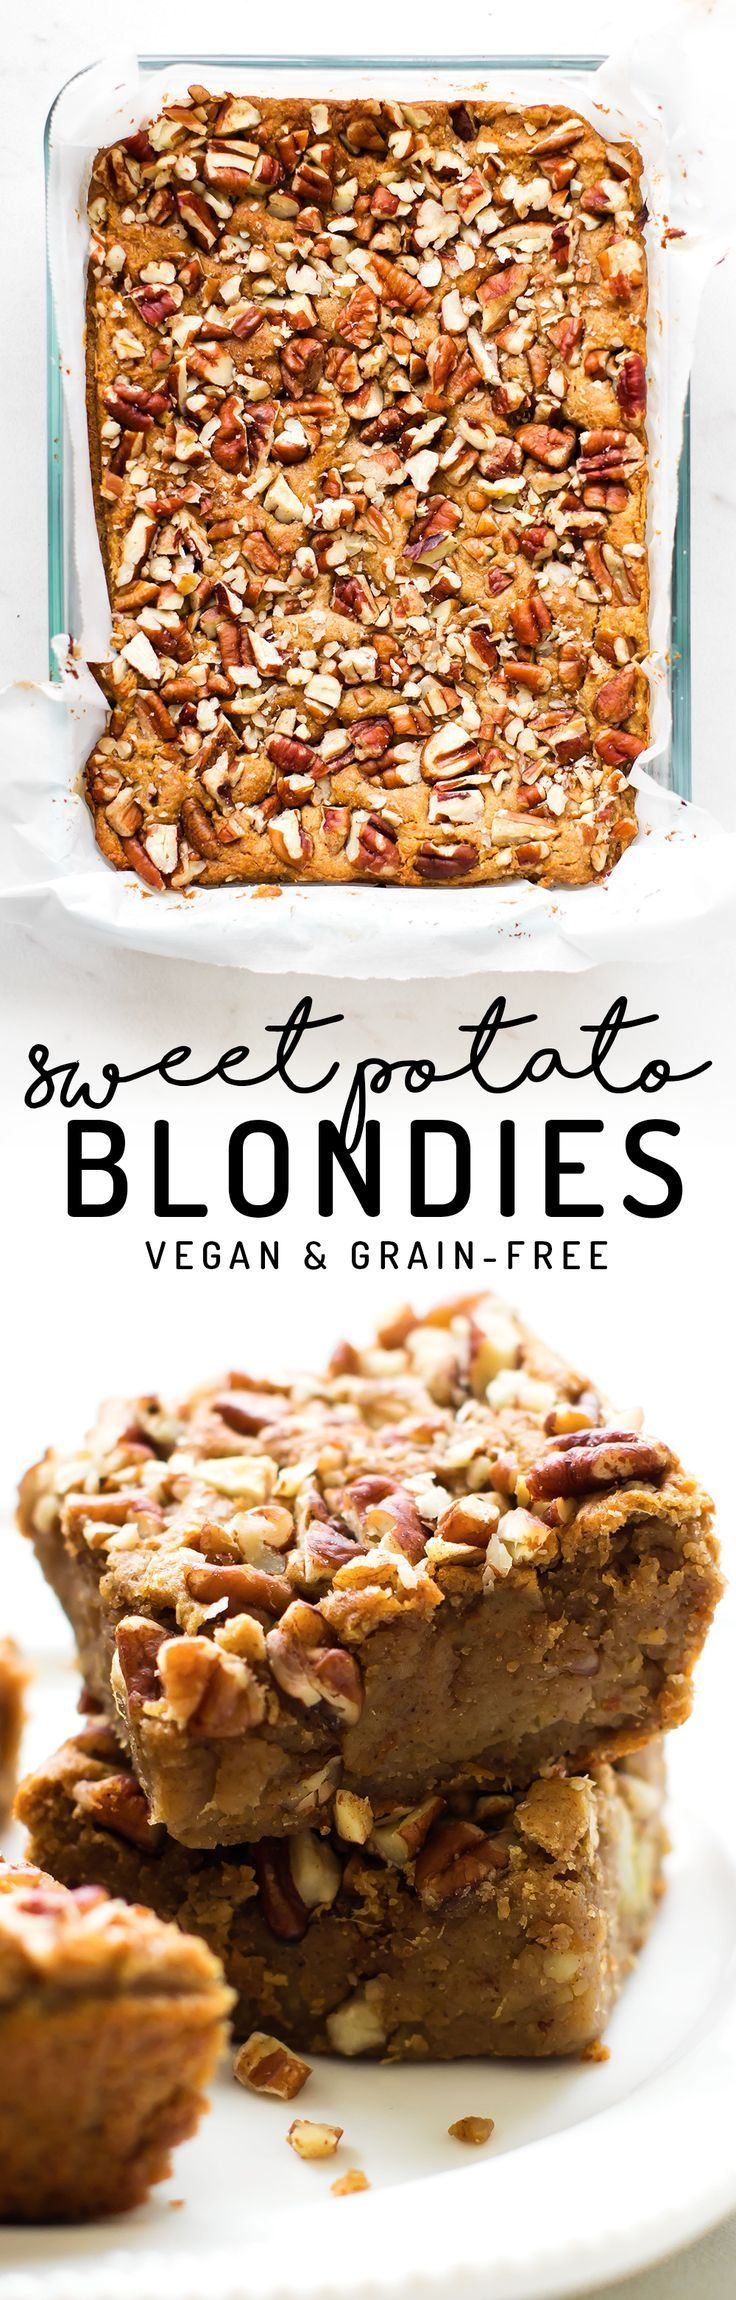 These chewy, cinnamon-spiced Sweet Potato Blondies make for a yummy snack or dessert that's gluten-free, oil-free, grain-free, and vegan!